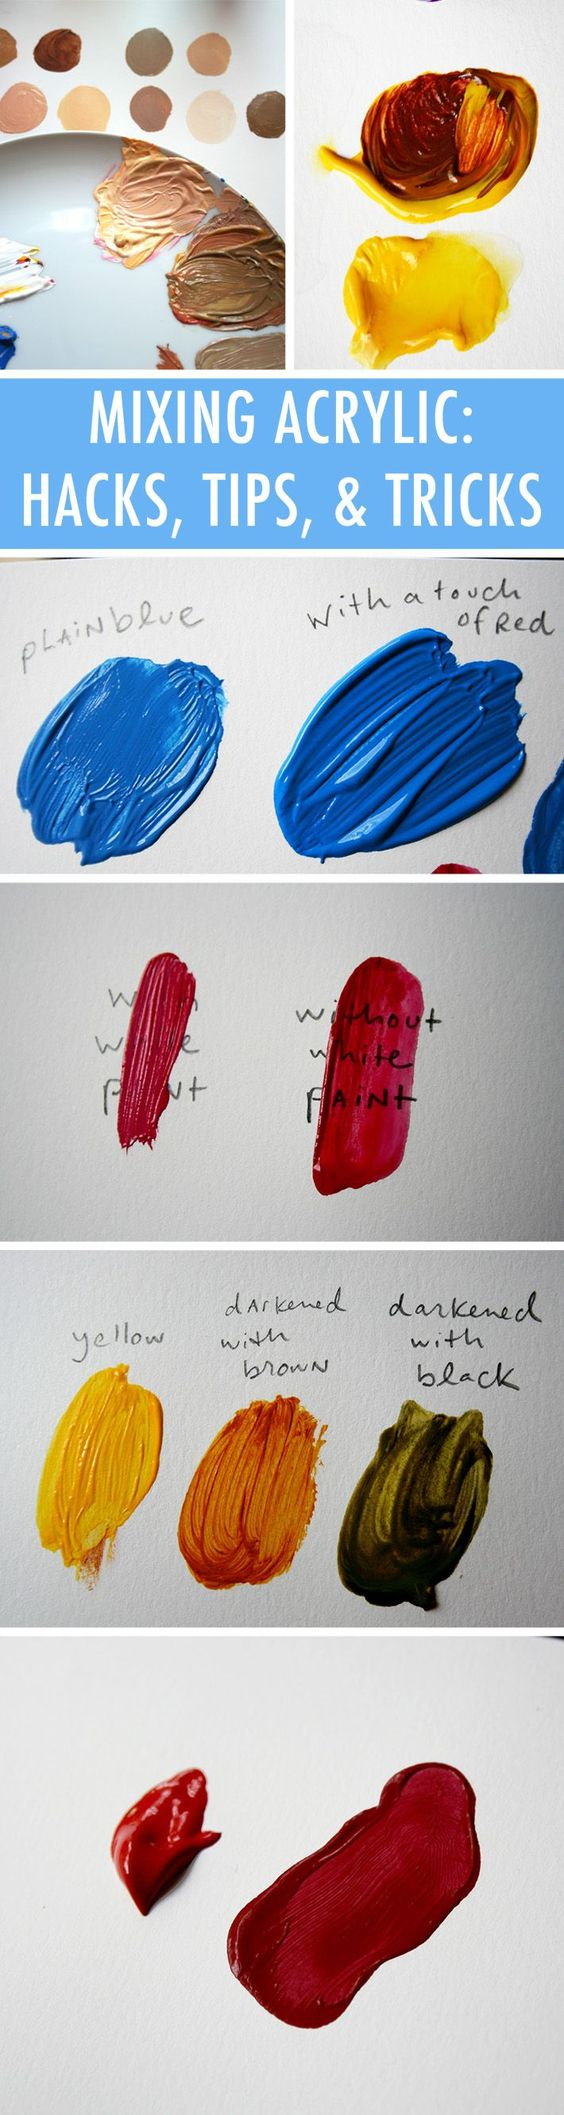 how-to-mix-acrylic-paints-1